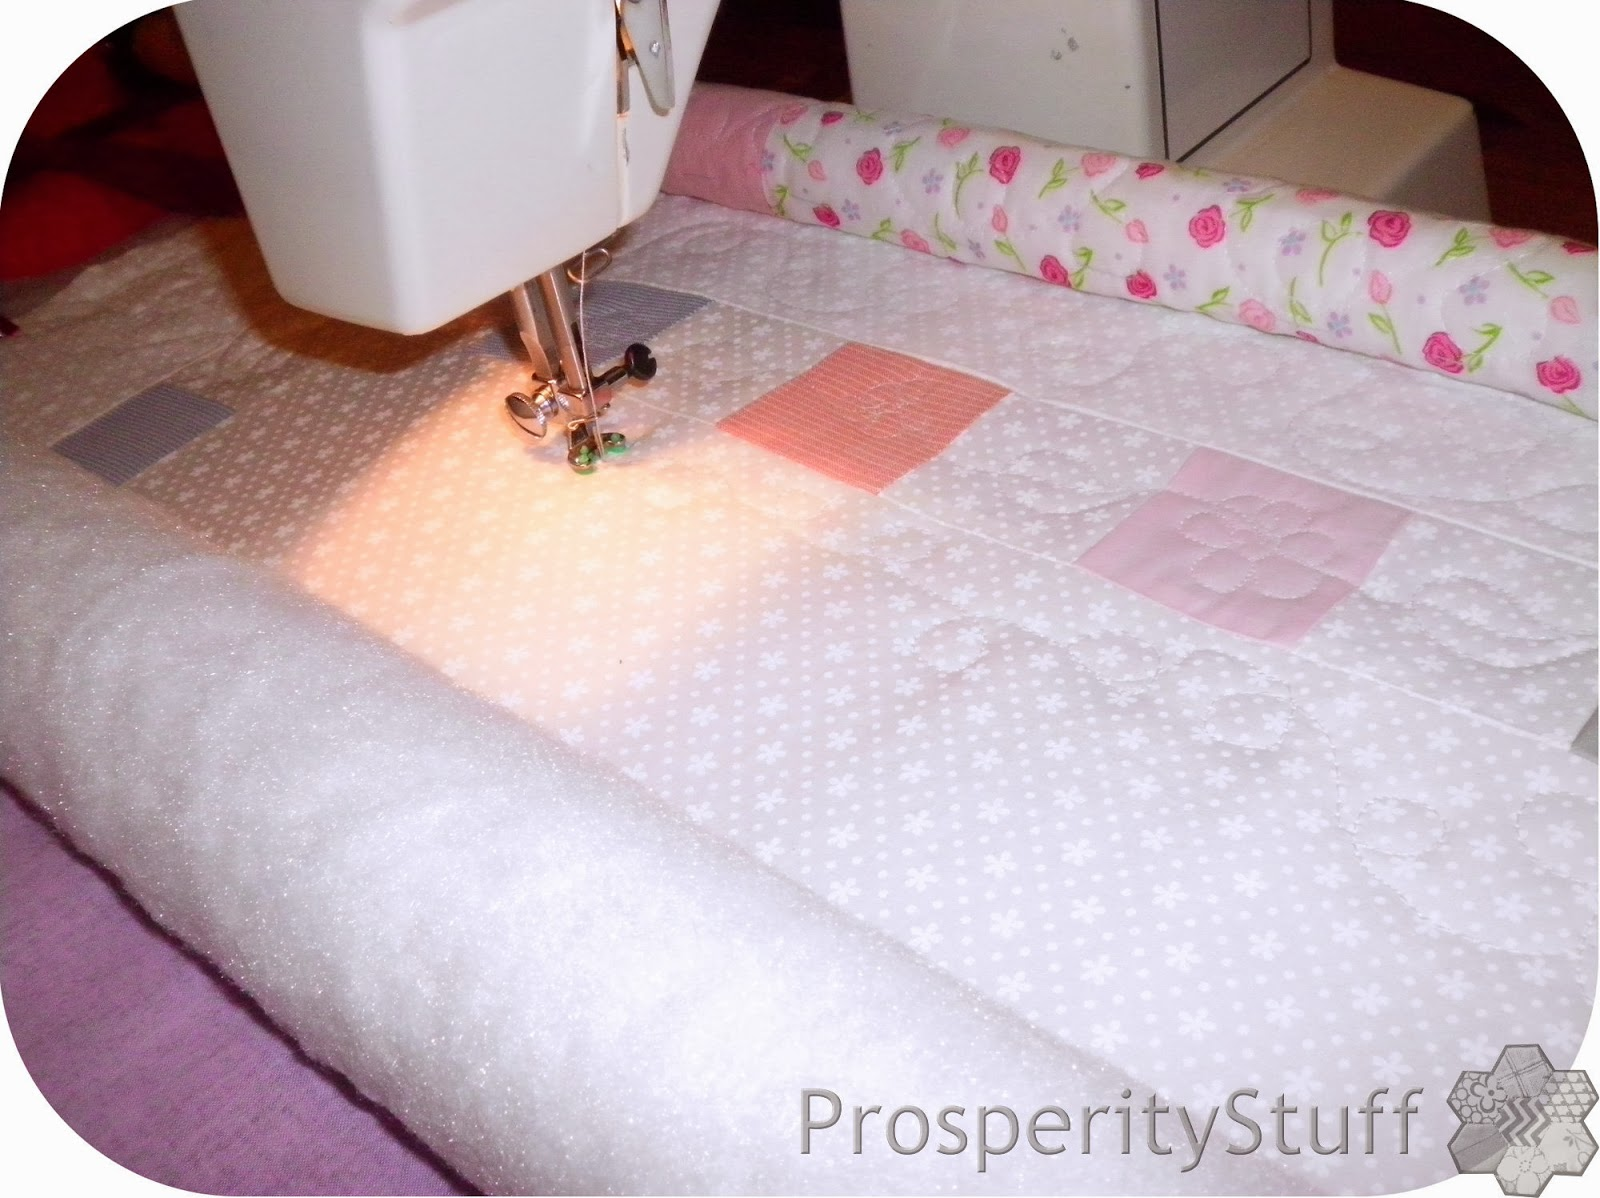 ProsperityStuff Quilts: What I Got For Christmas